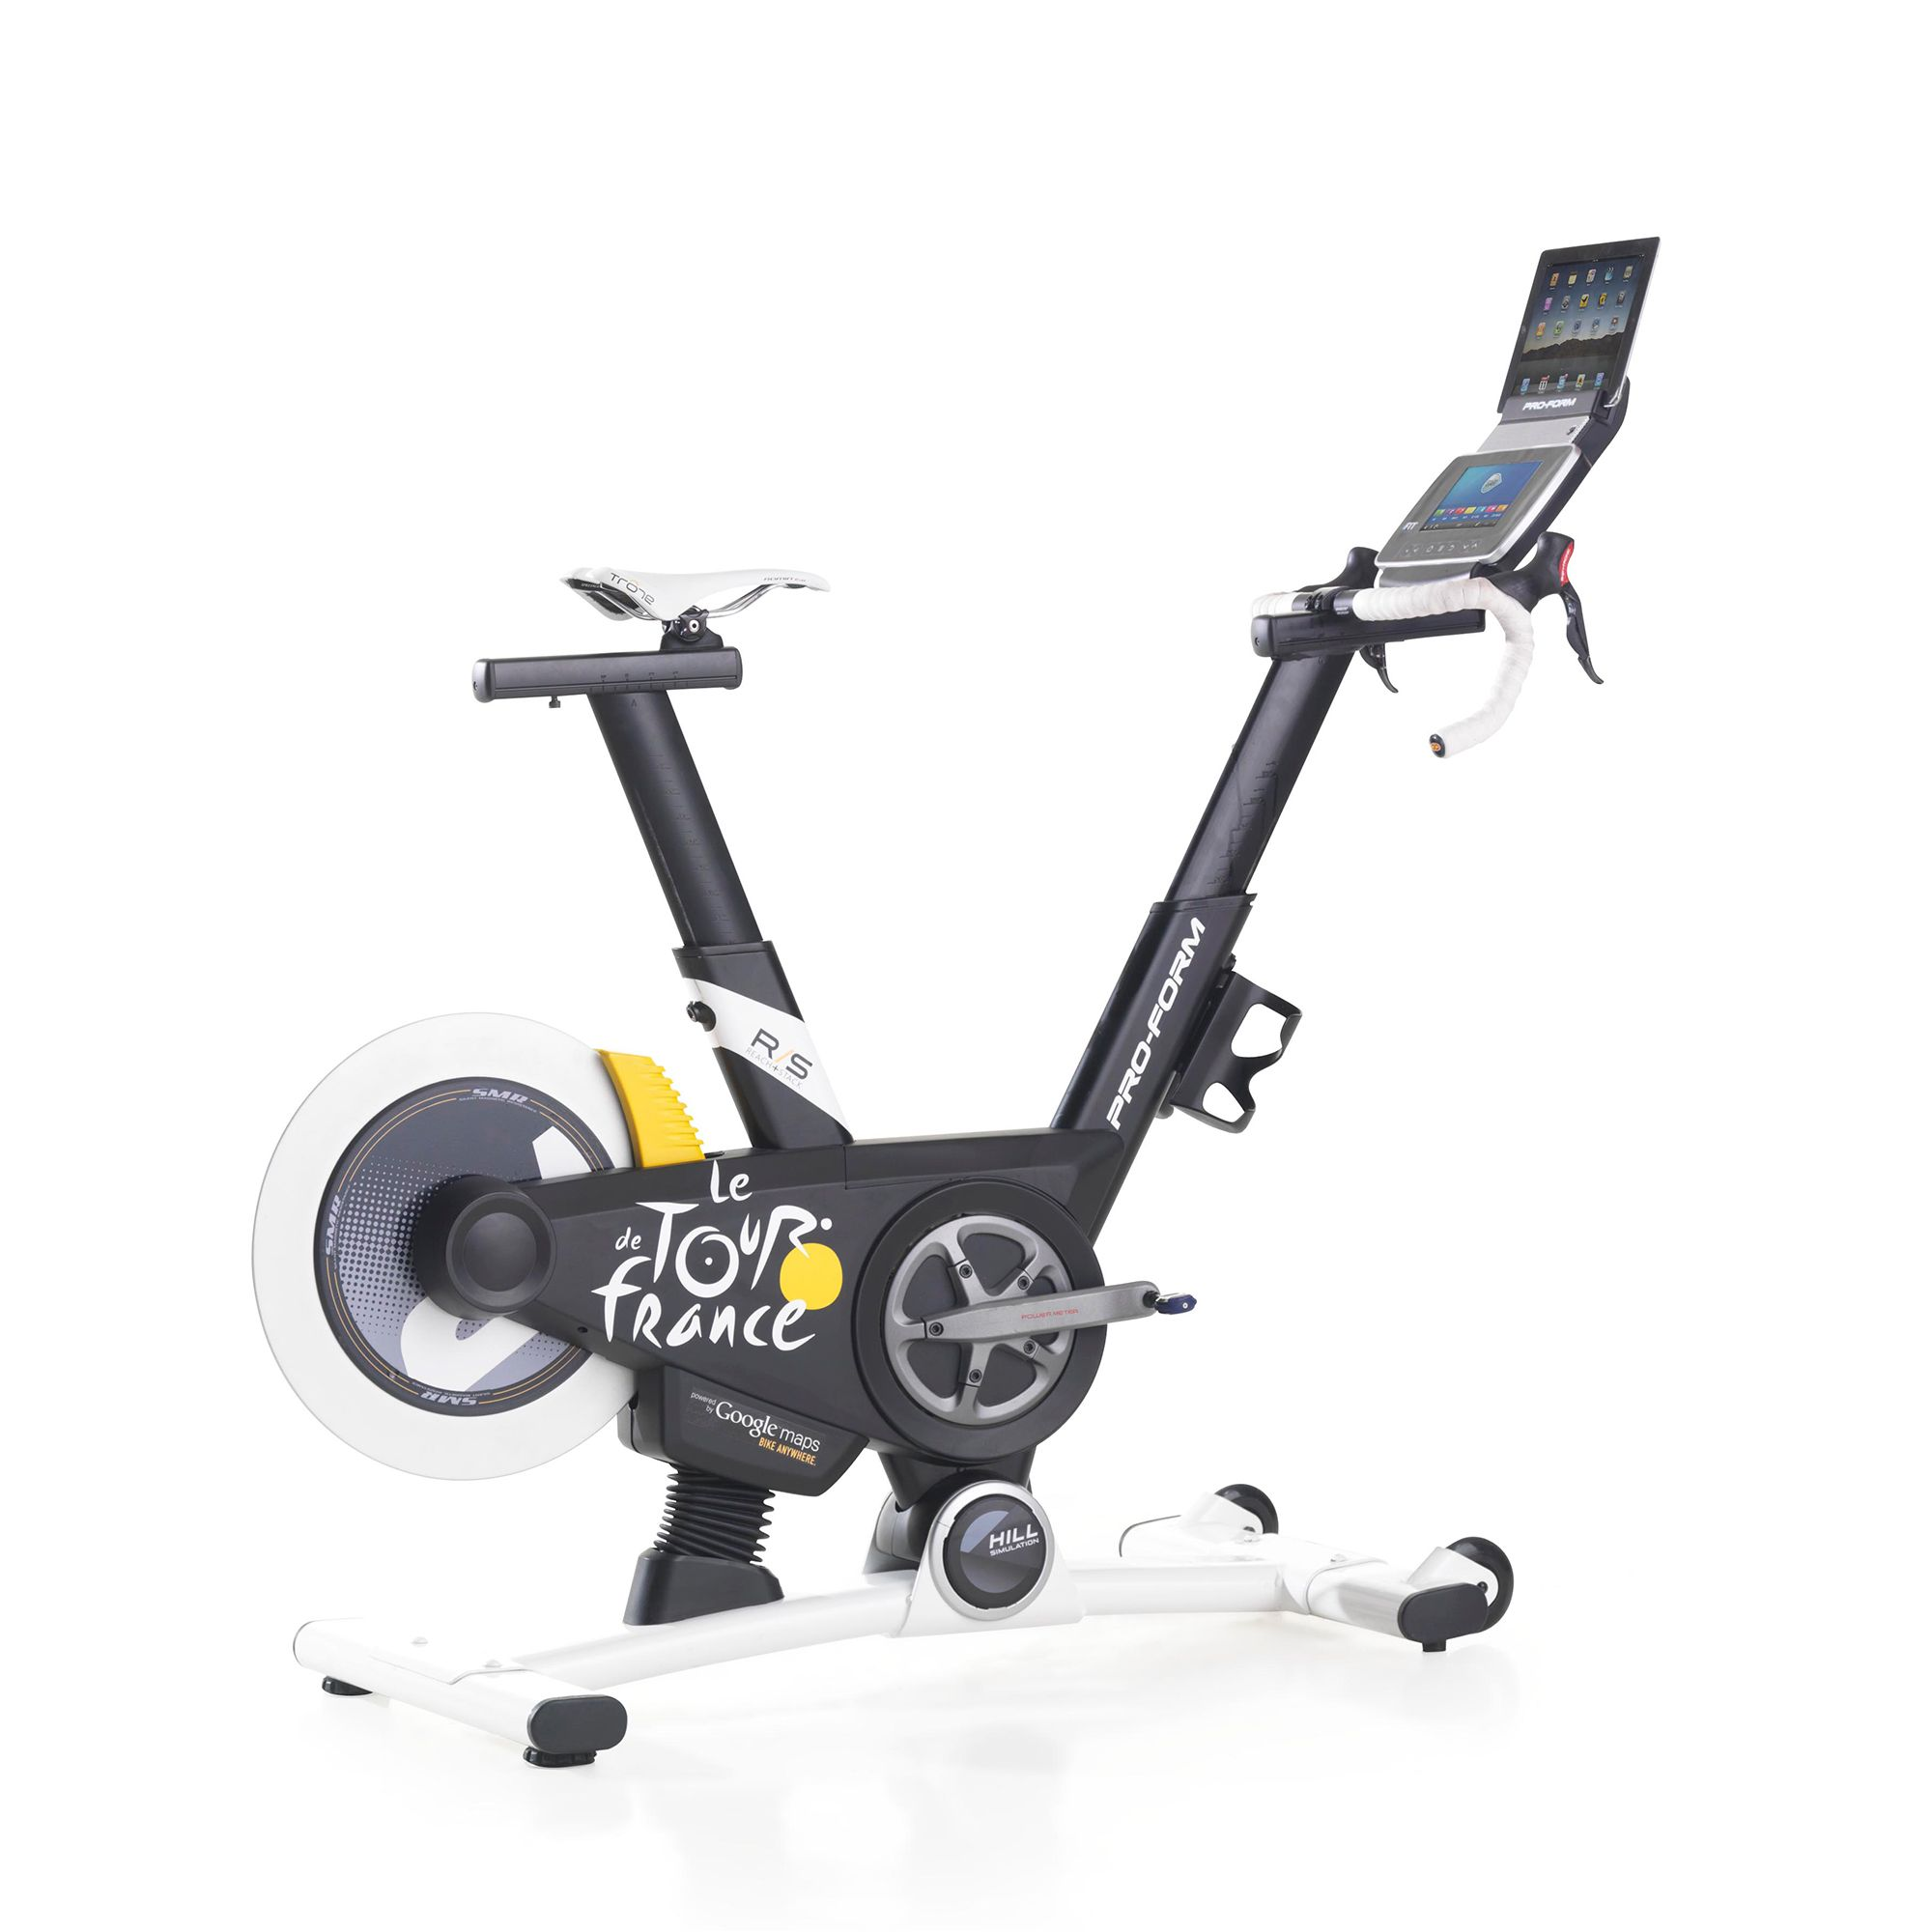 5 Best Exercise Bike Designs You Didn't Expect